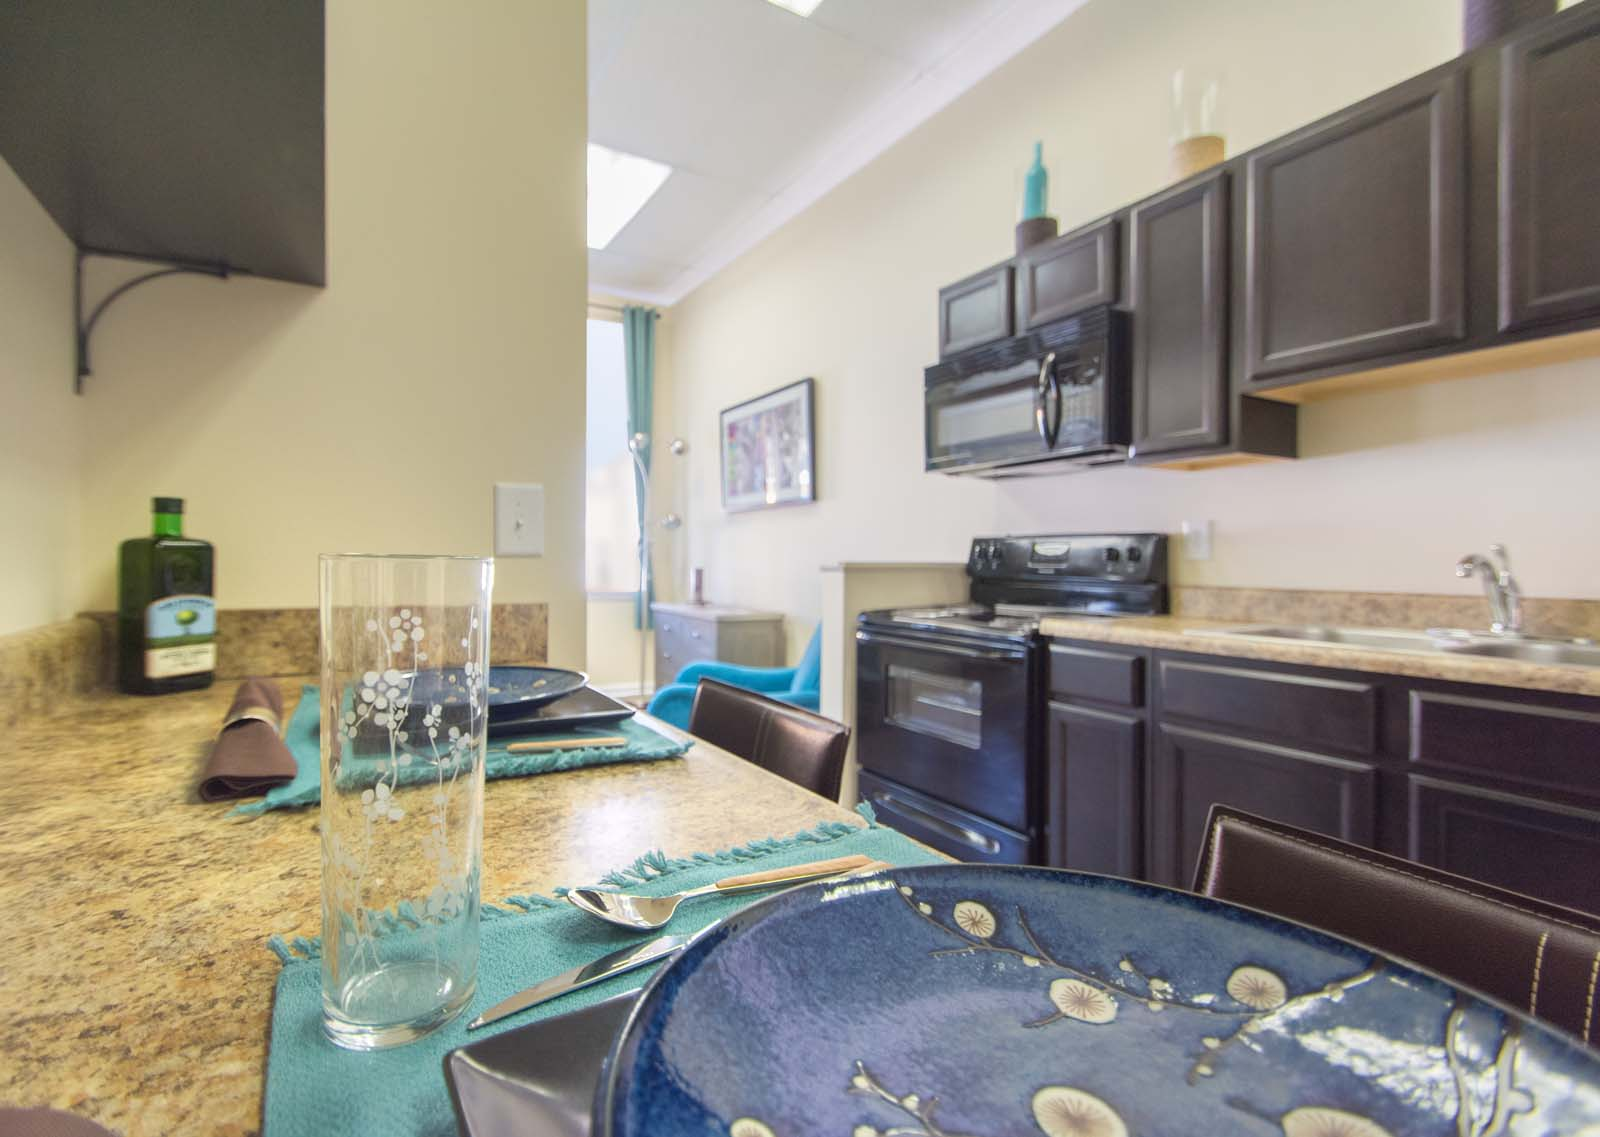 1 bedroom efficiency apartments studio apartment a studio 531 studio and 1 bedroom 13912